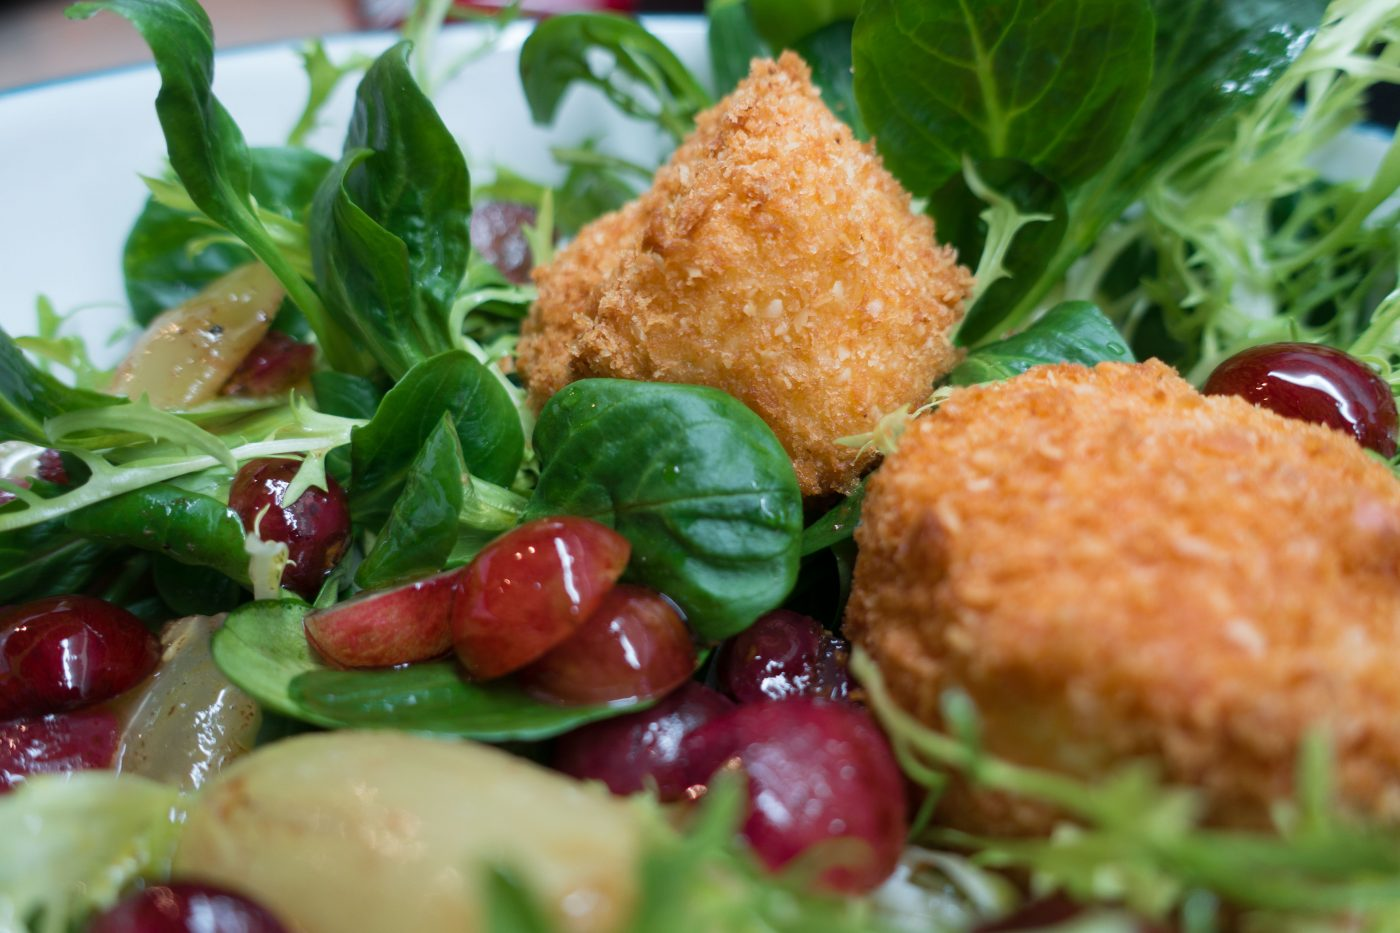 Goat cheese in panko breading with winter salad